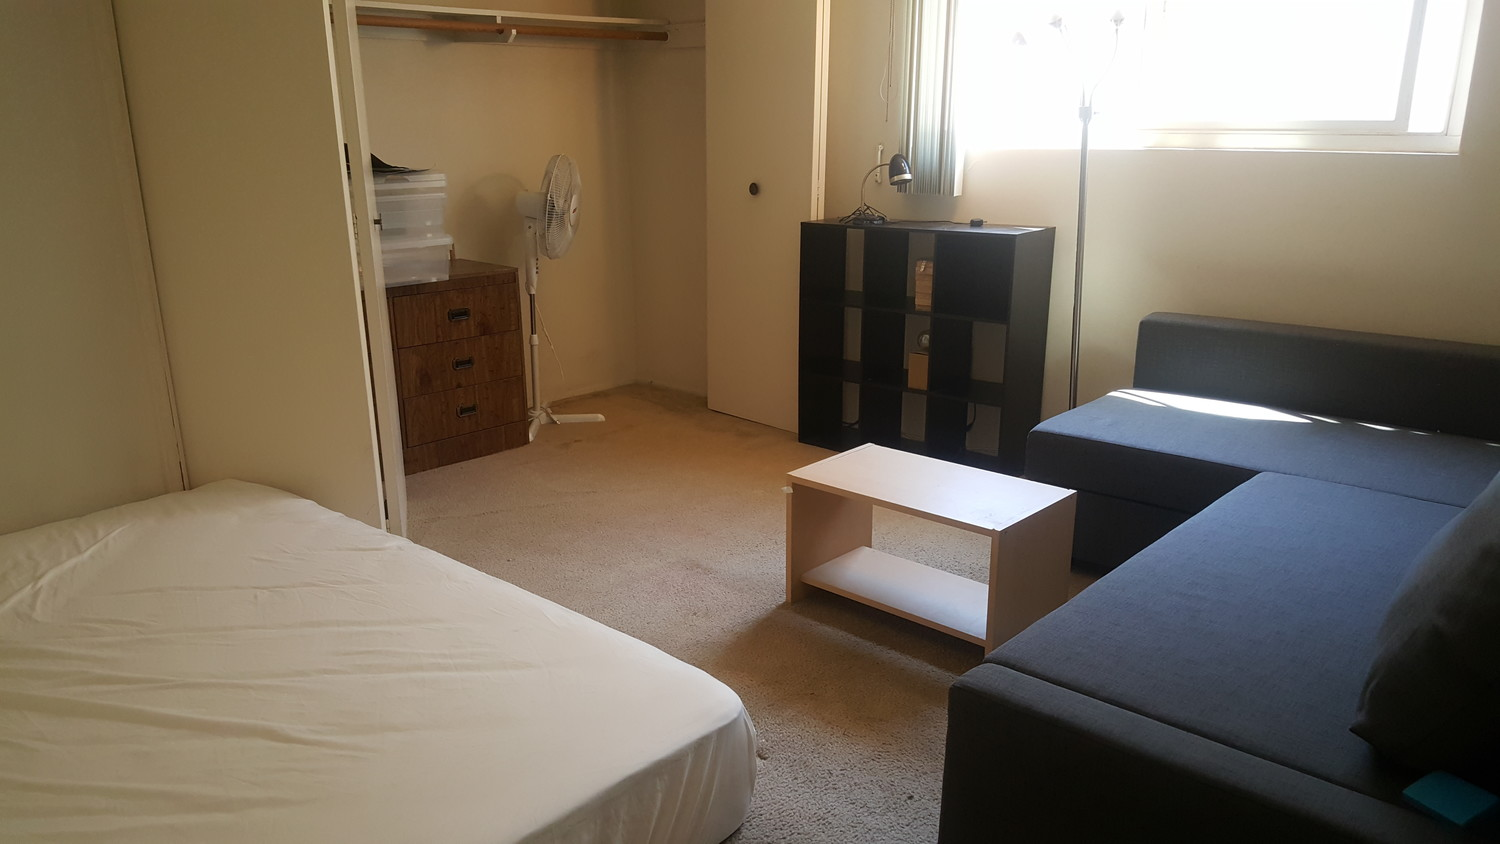 Furnished large closet room with own shower room.